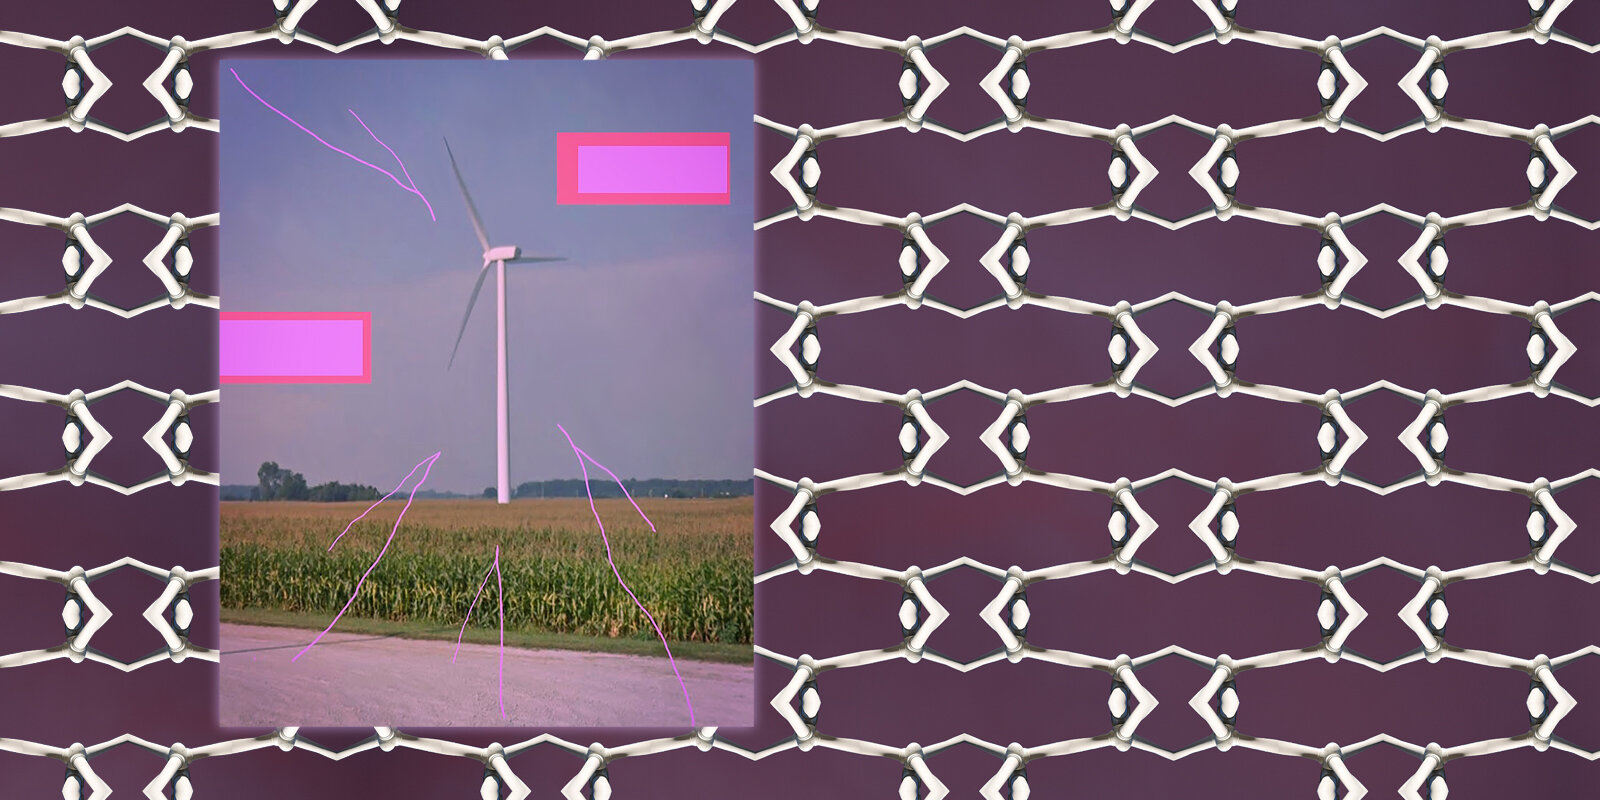 Stringfield_Lizz_Wind_Farm_2.jpg